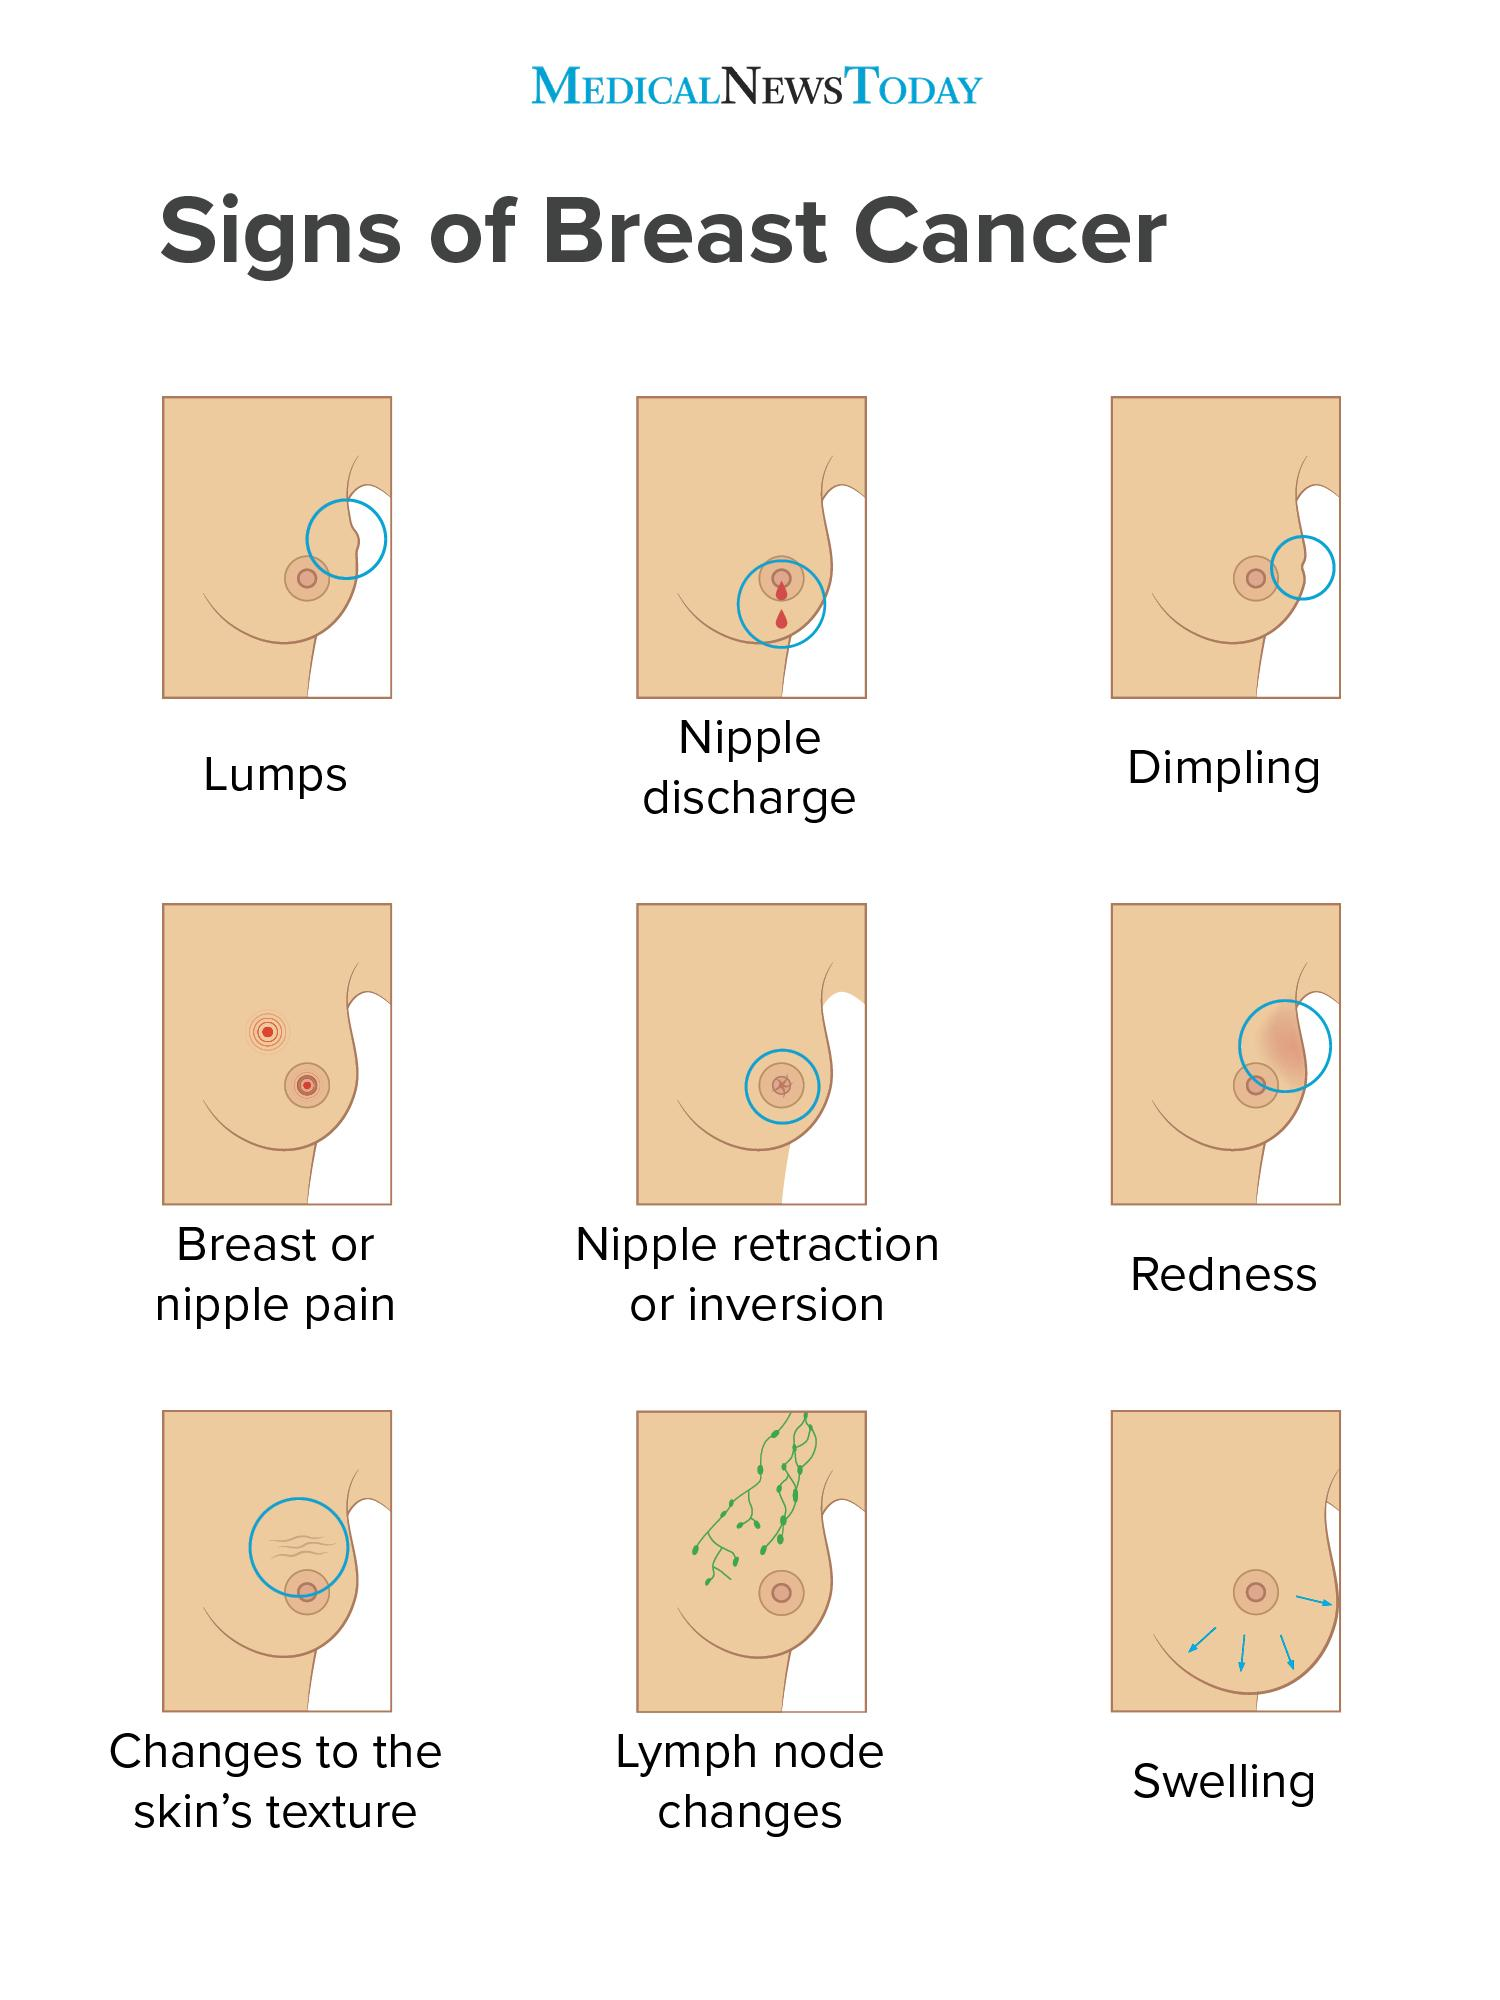 signs of breast cancer infographic